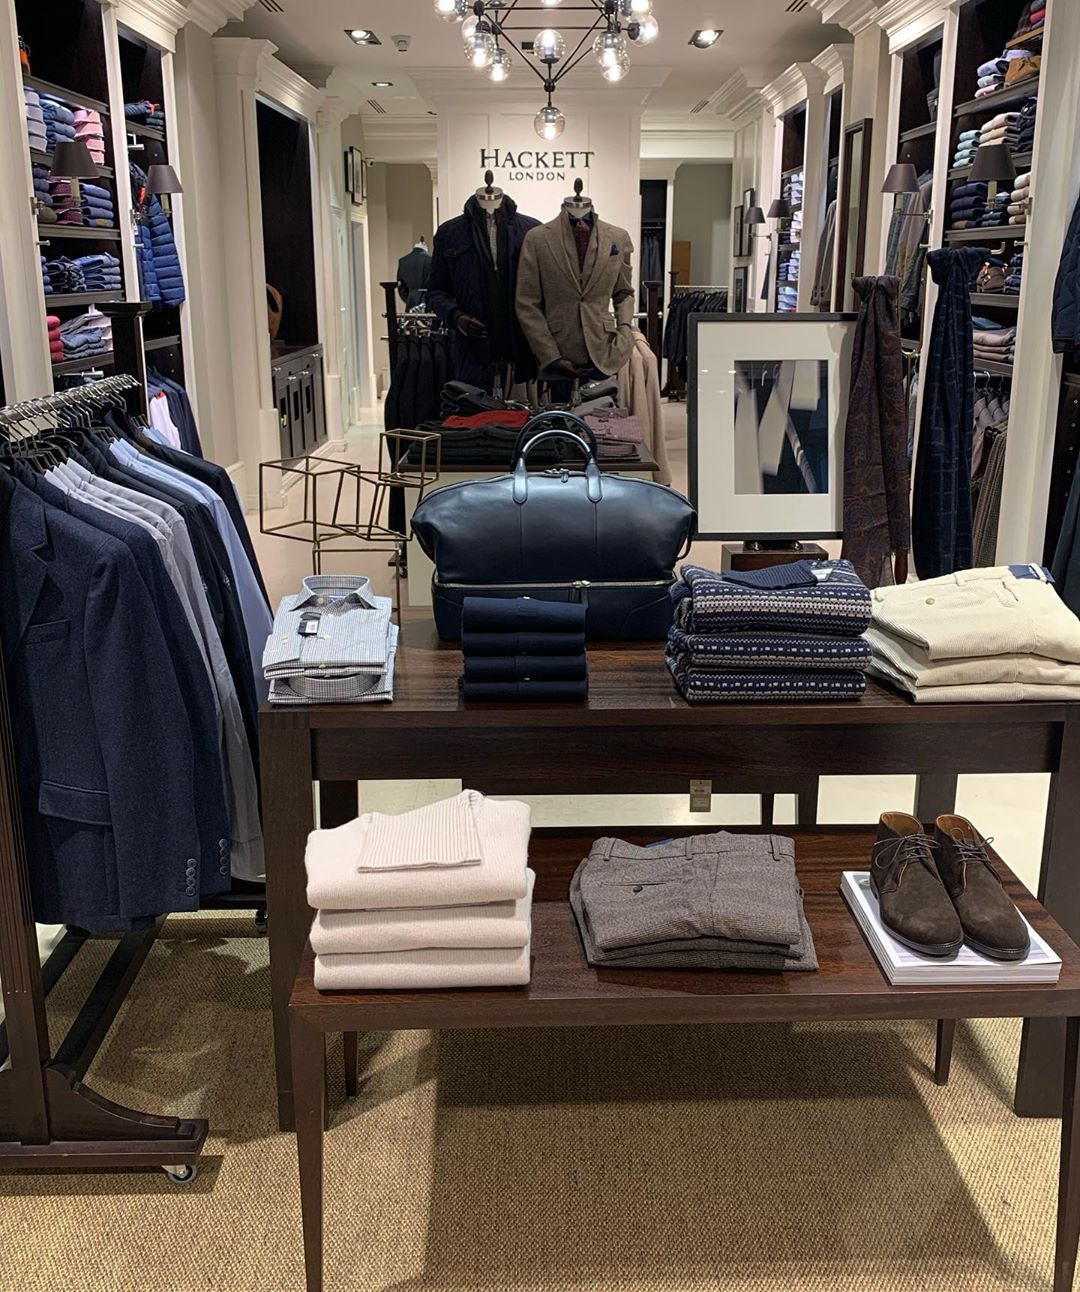 Boutique Hackett London